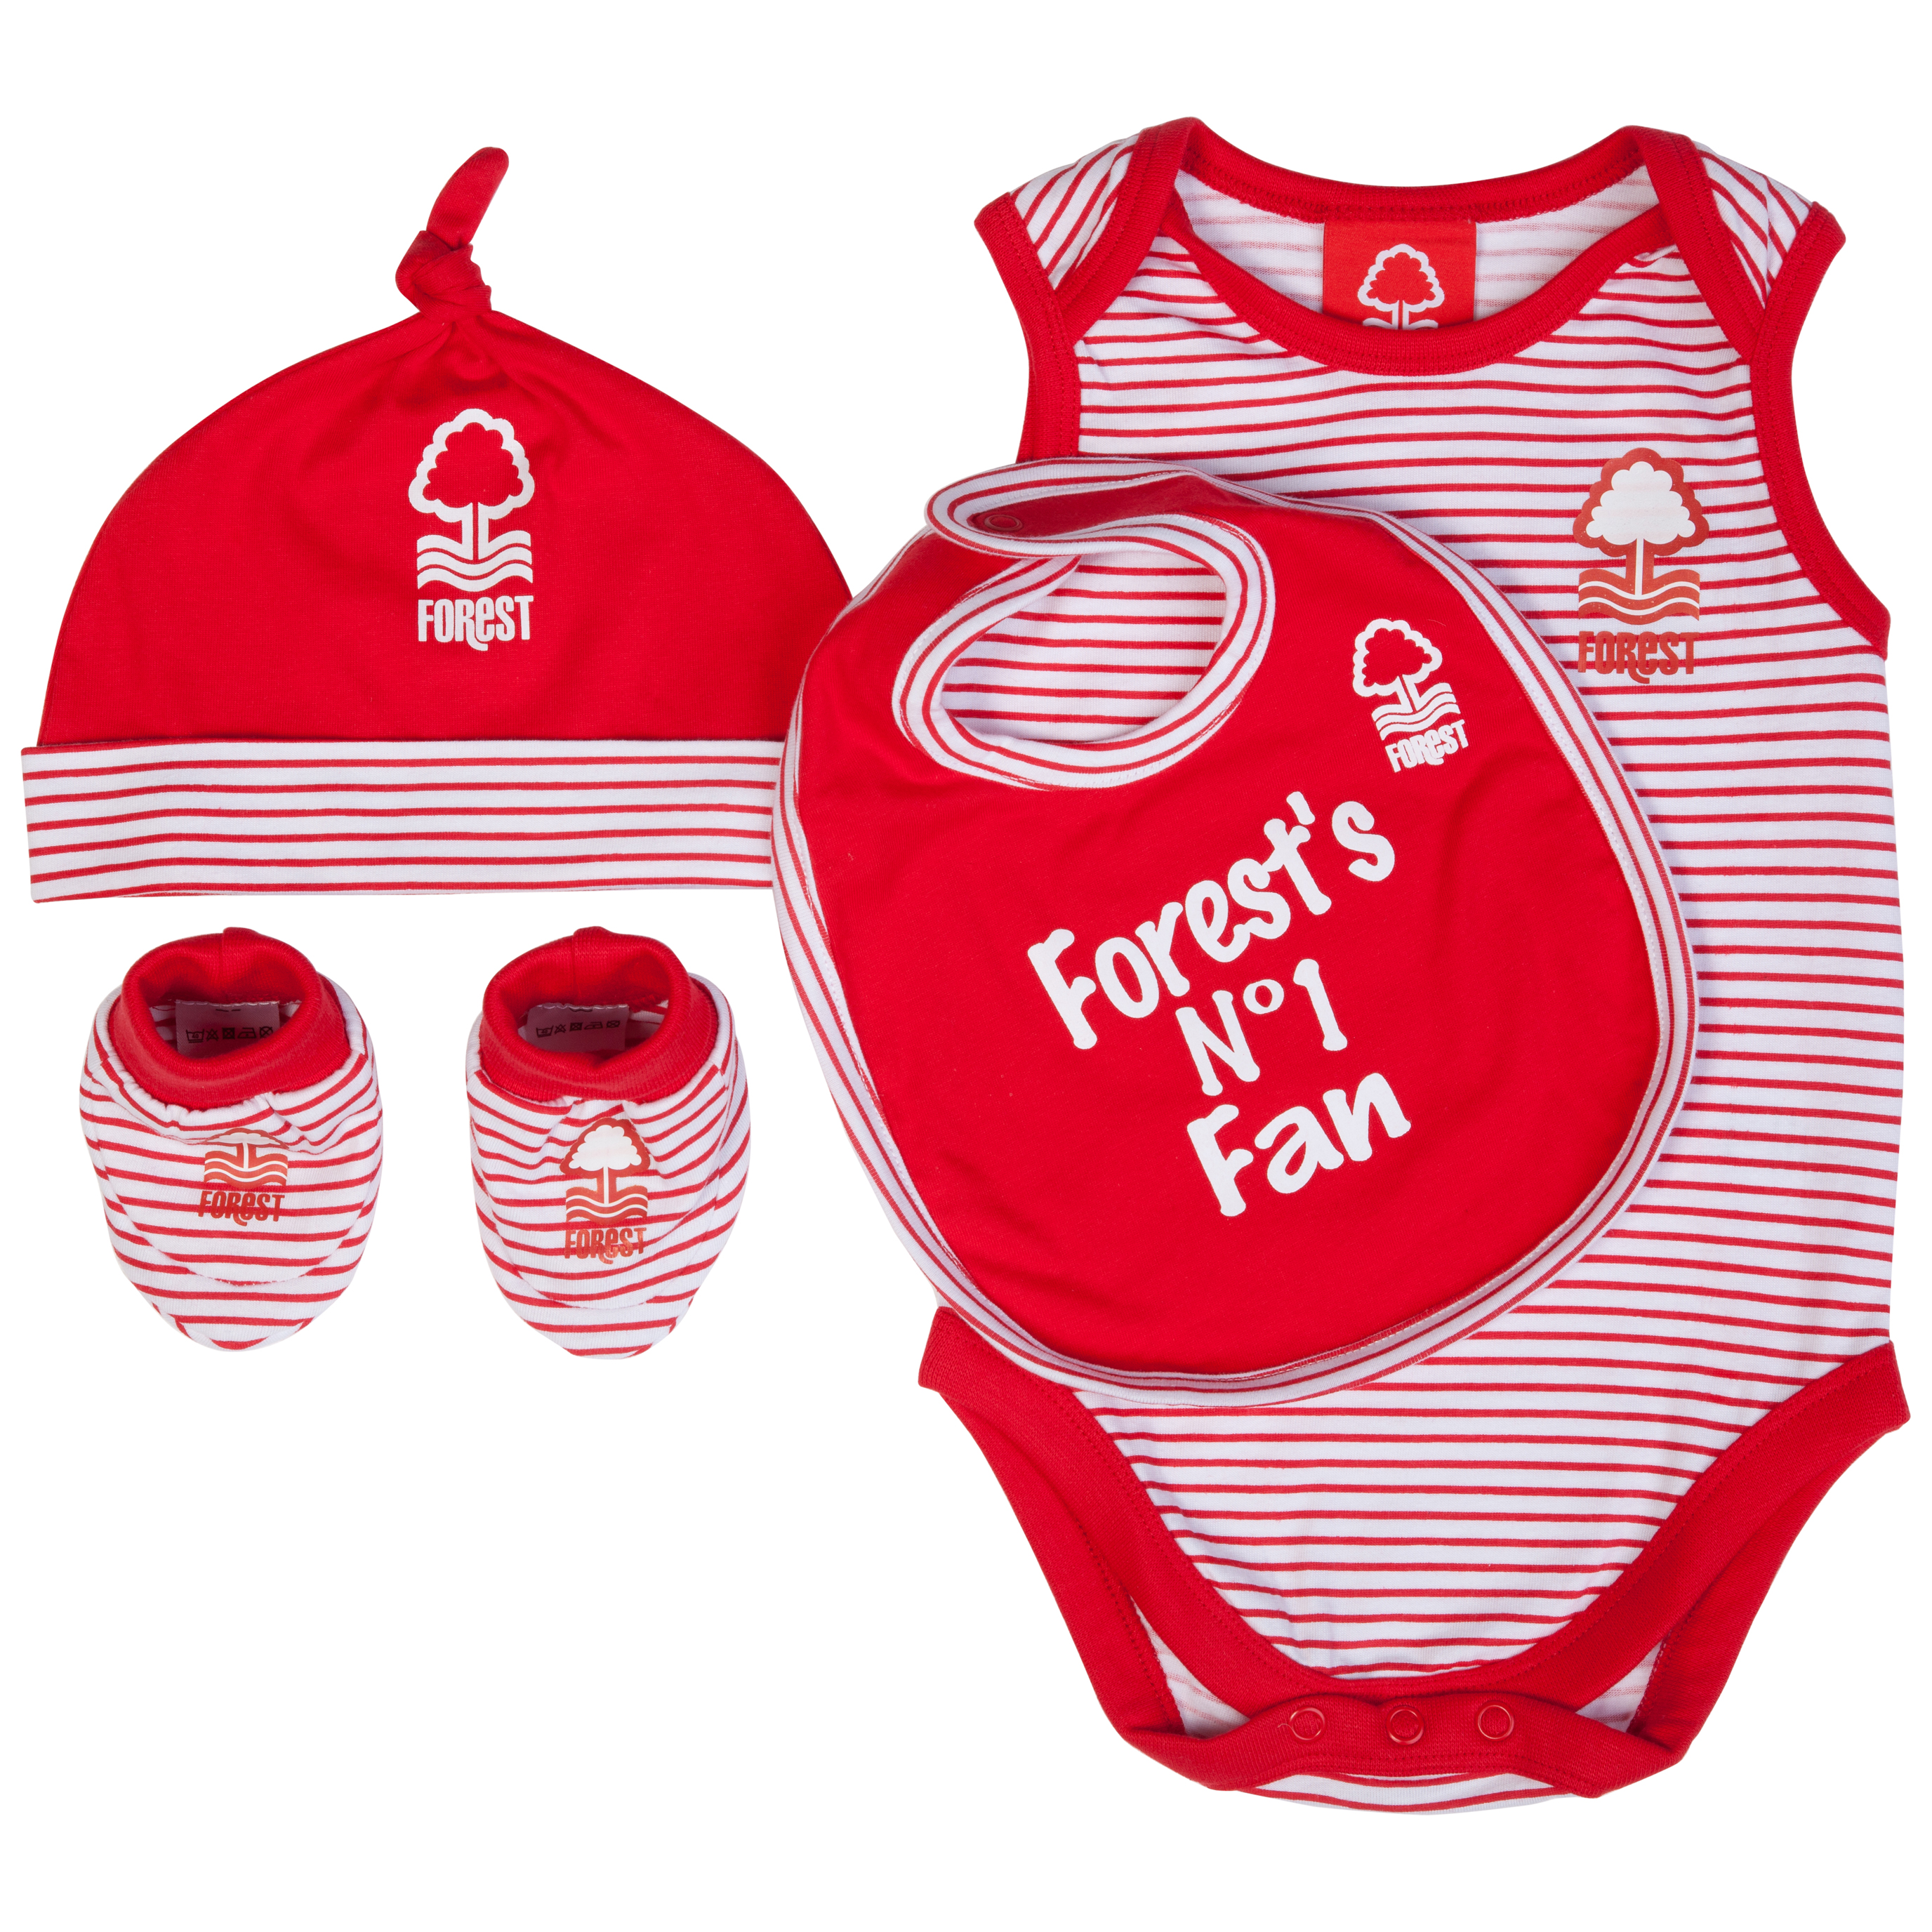 Nottingham Forest 4 Piece Gift Set - White/Red - Baby